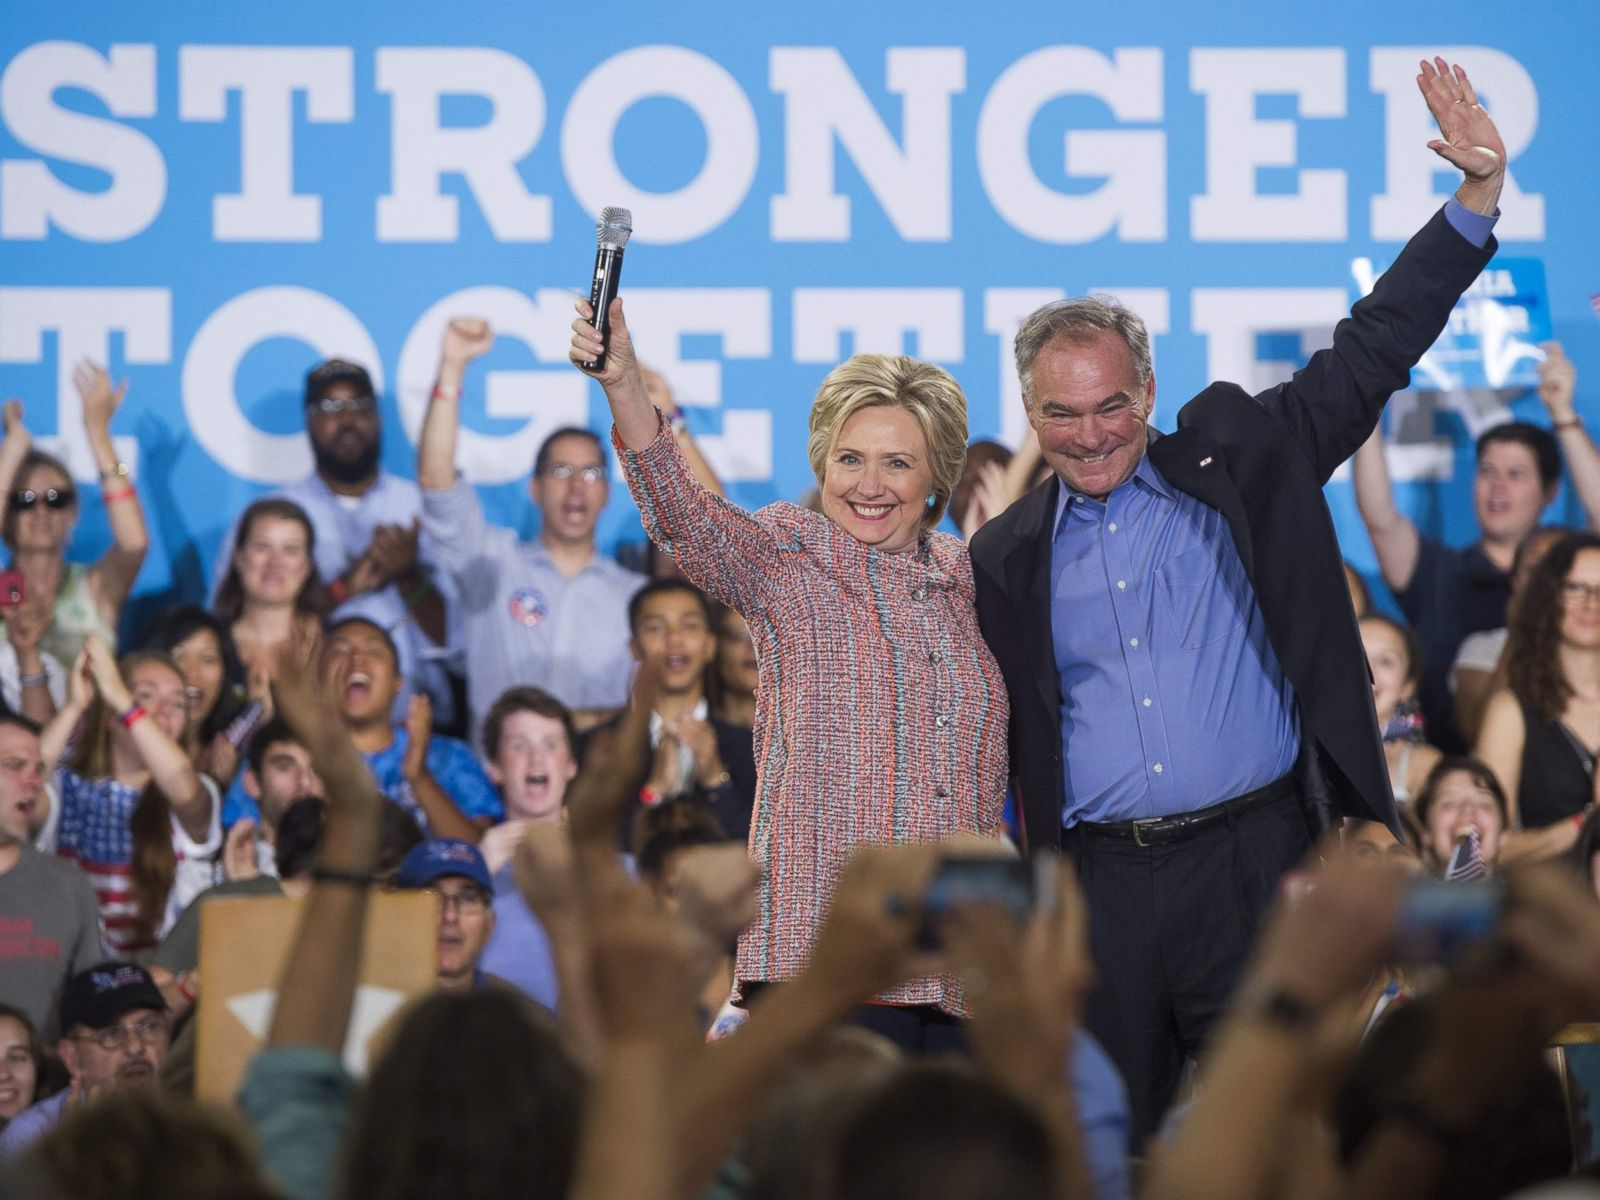 PHOTO: Democratic Presidential candidate Hillary Clinton and Sen. Tim Kaine, Democrat of Virginia, wave during a campaign rally at Ernst Community Cultural Center in Annandale, Virginia, July 14, 2016.